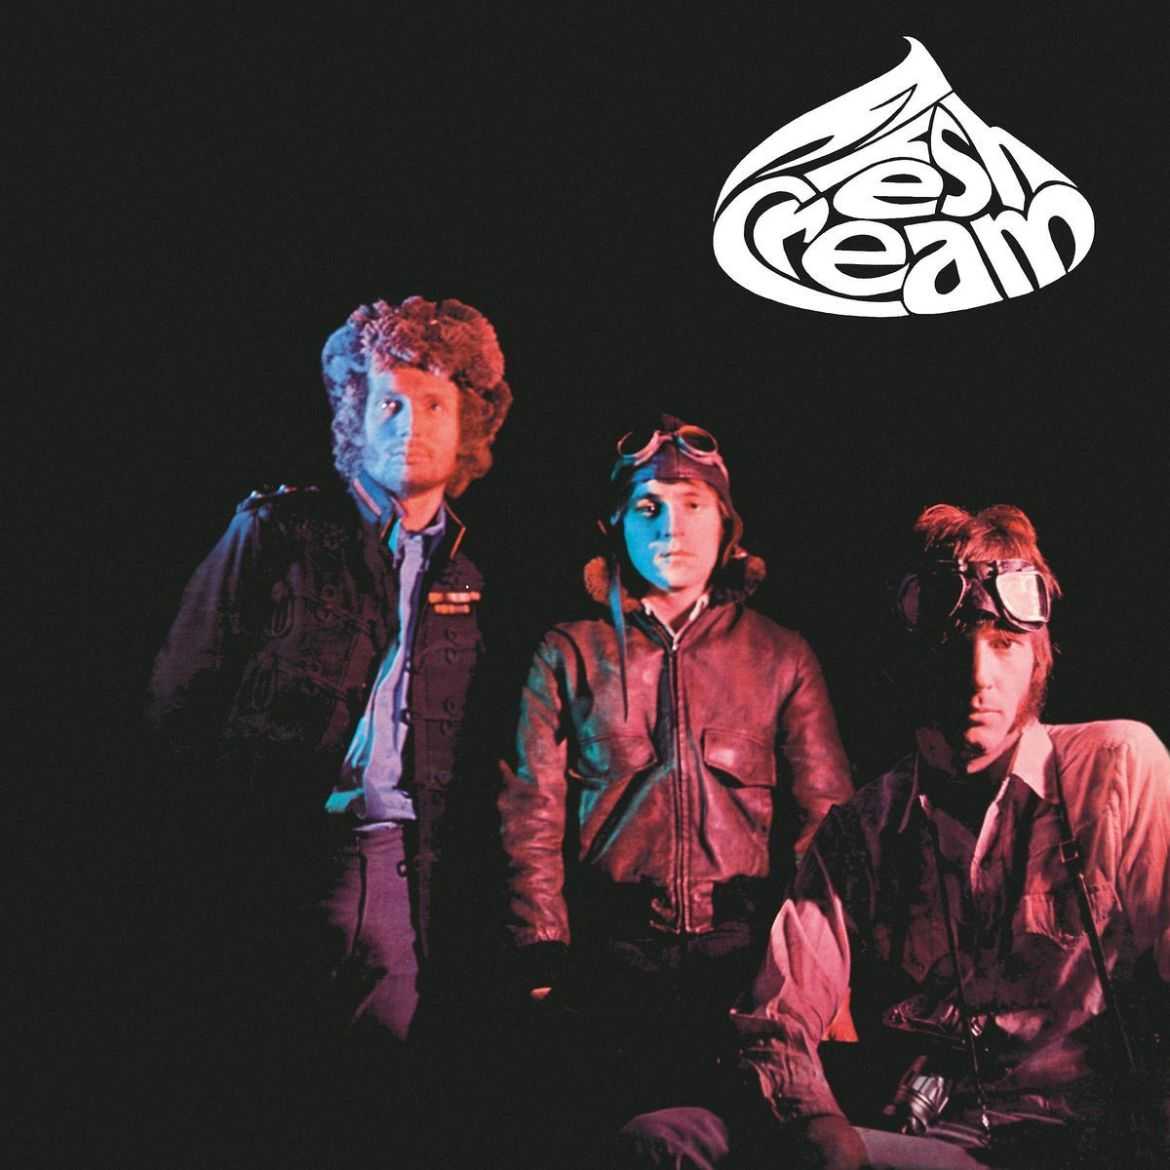 NEWS: Cream are reissuing their iconic debut album 'Fresh Cream'